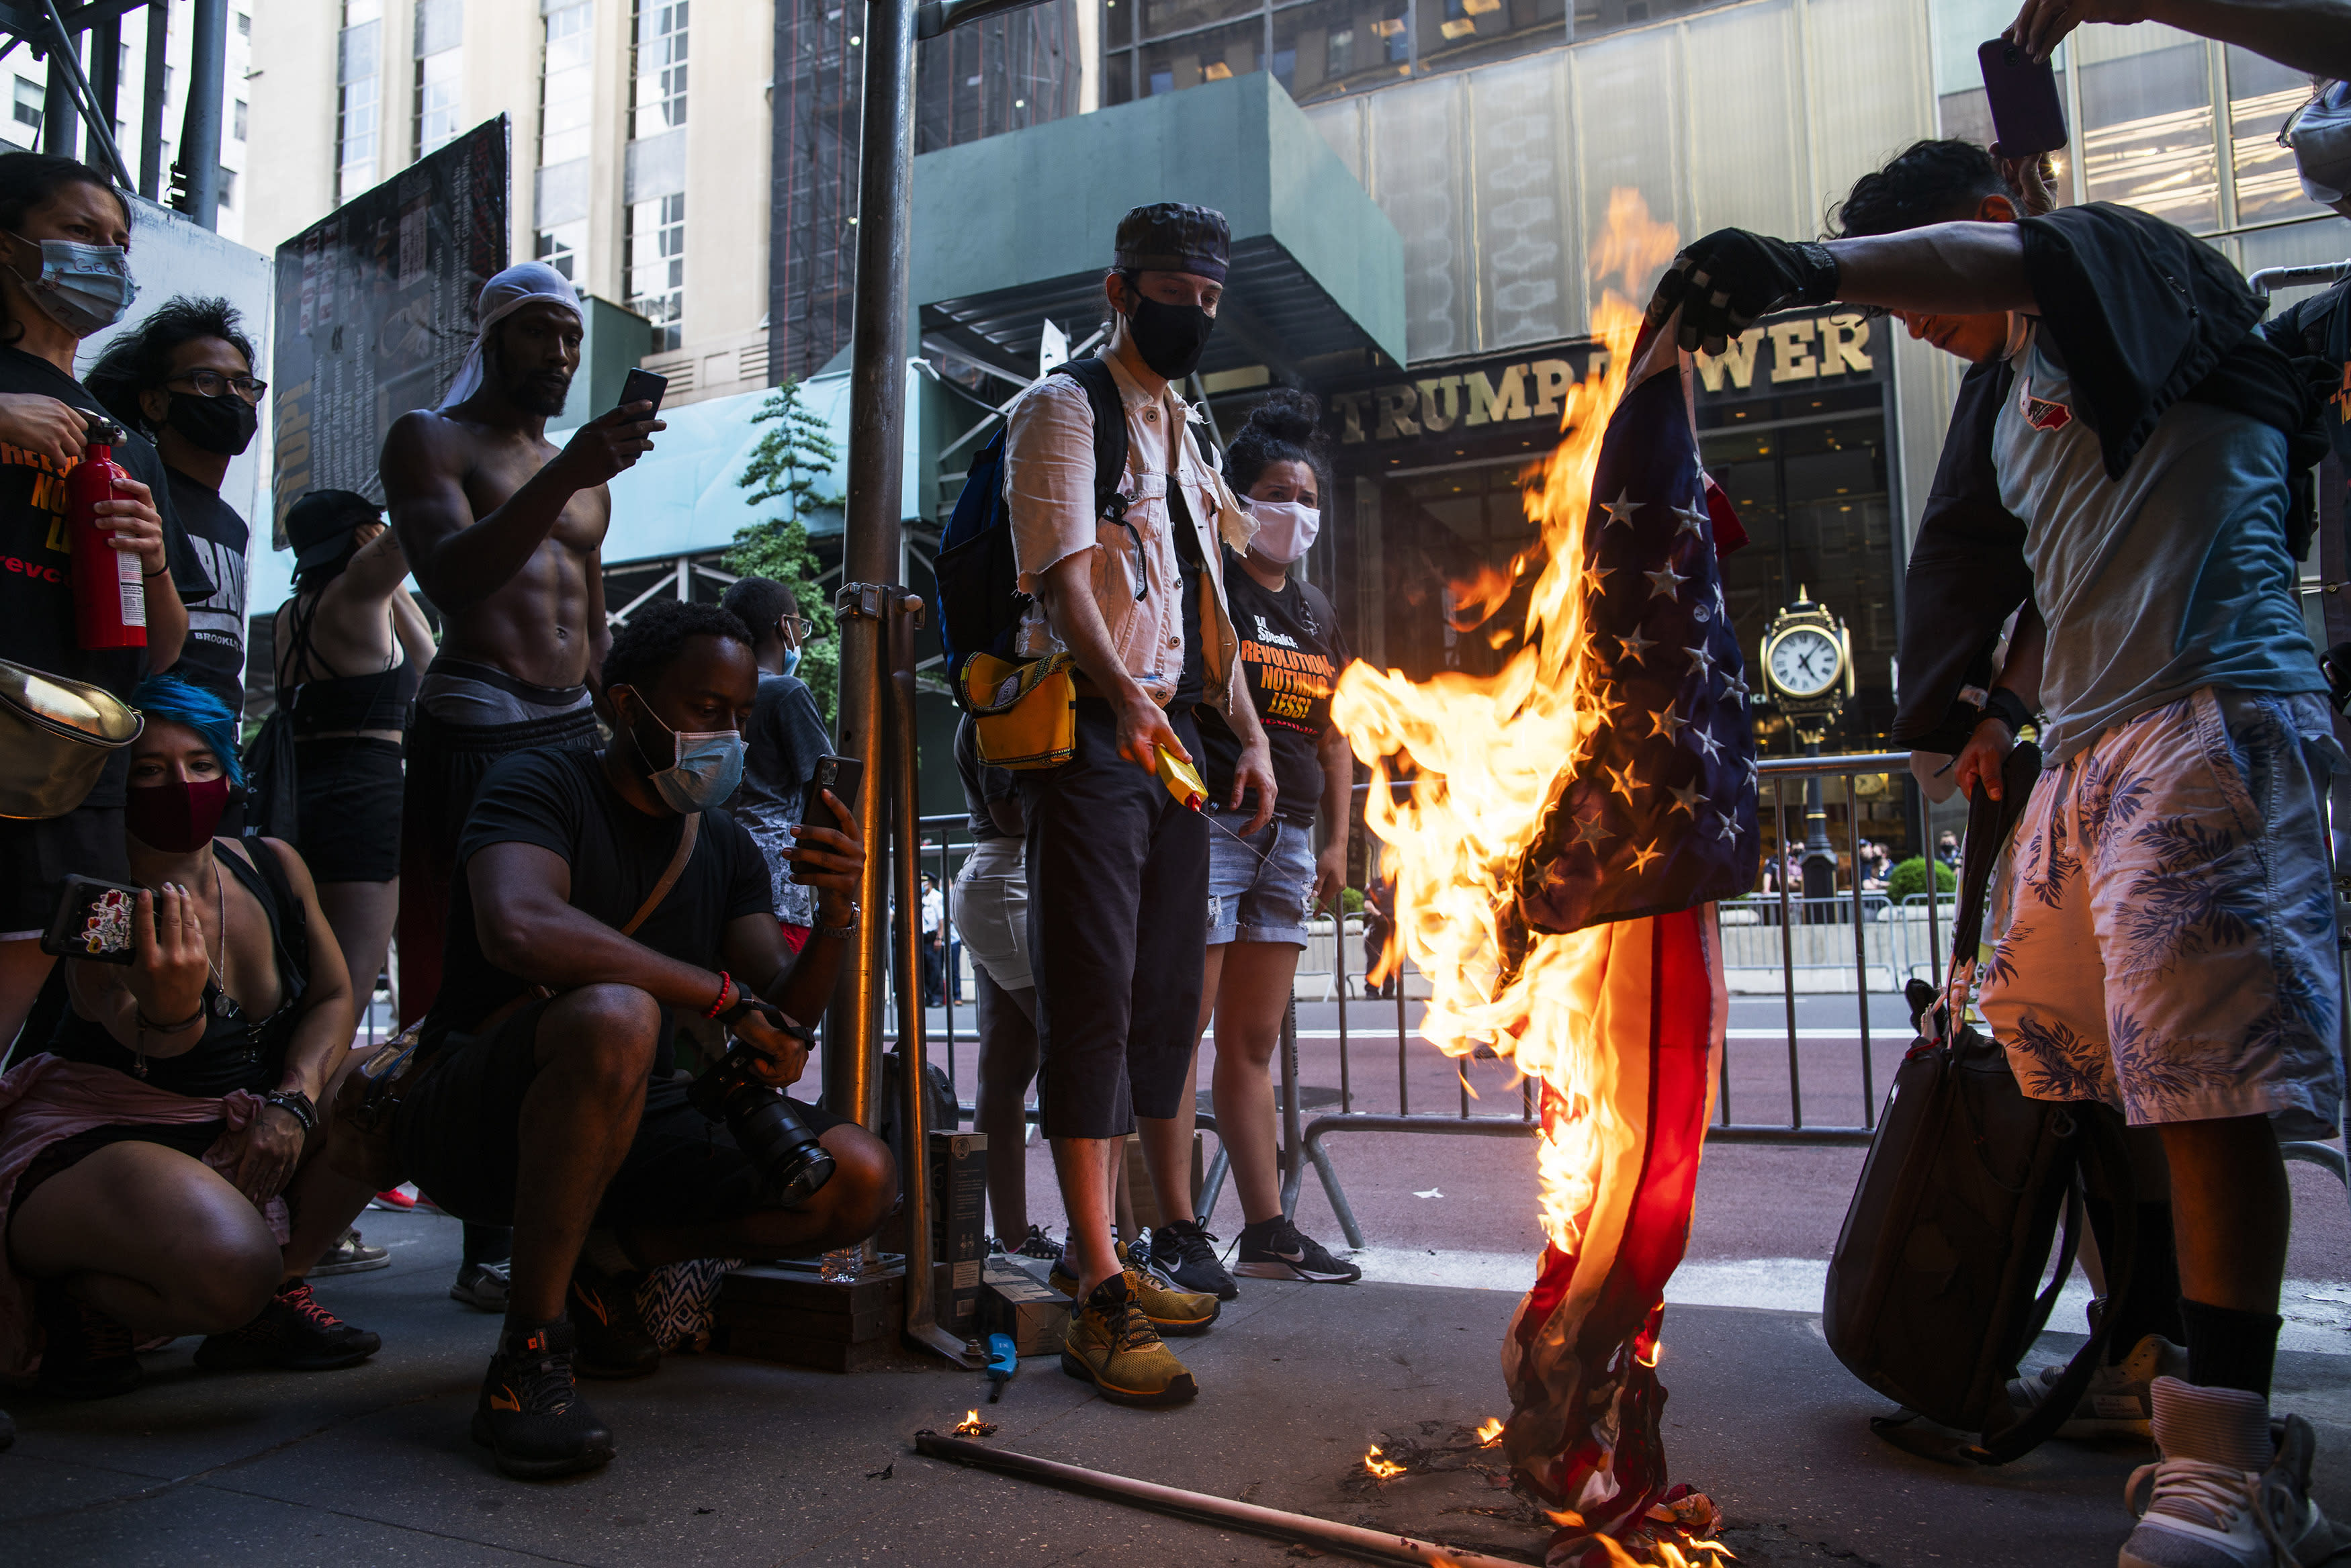 Protesters burn U.S. flags during a protest in front of Trump Tower, Saturday, July 4, 2020, in New York. (AP Photo/Eduardo Munoz Alvarez)